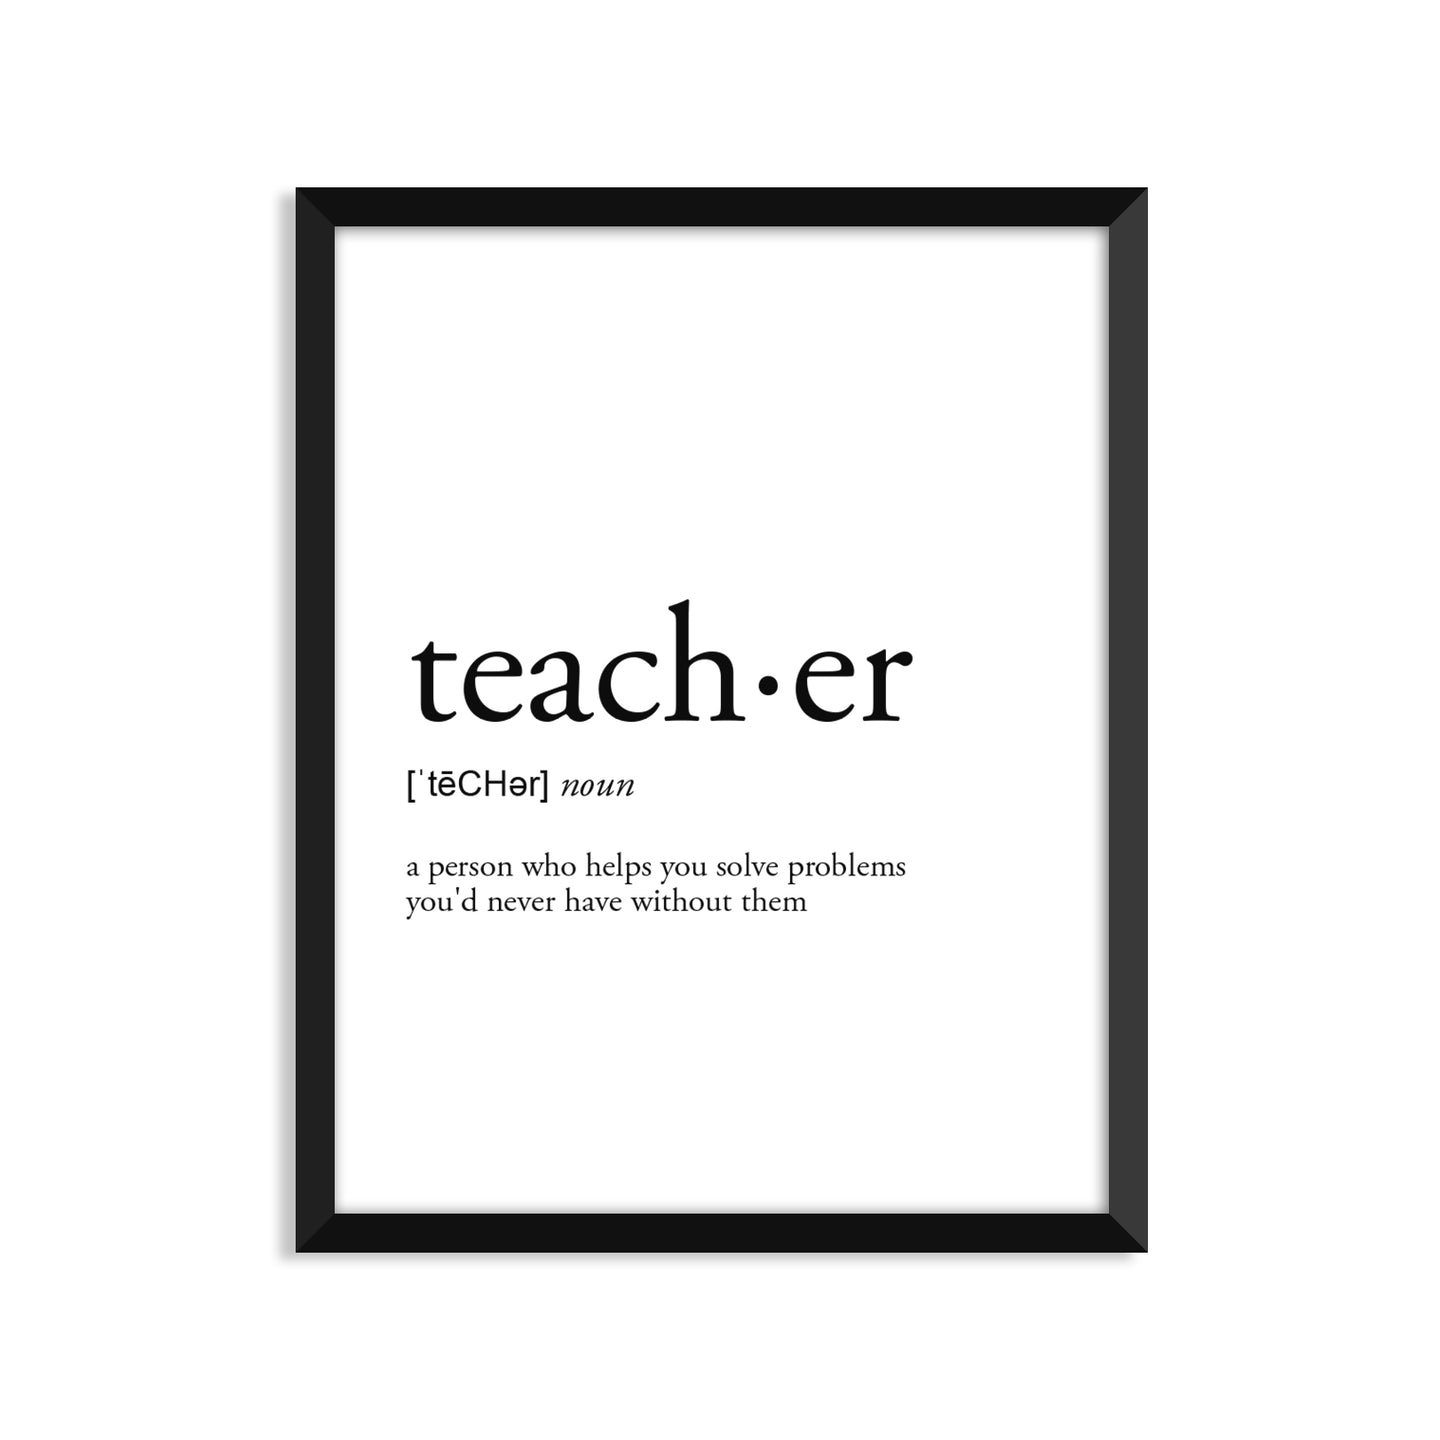 Teacher Definition - Unframed Art Print Or Greeting Card